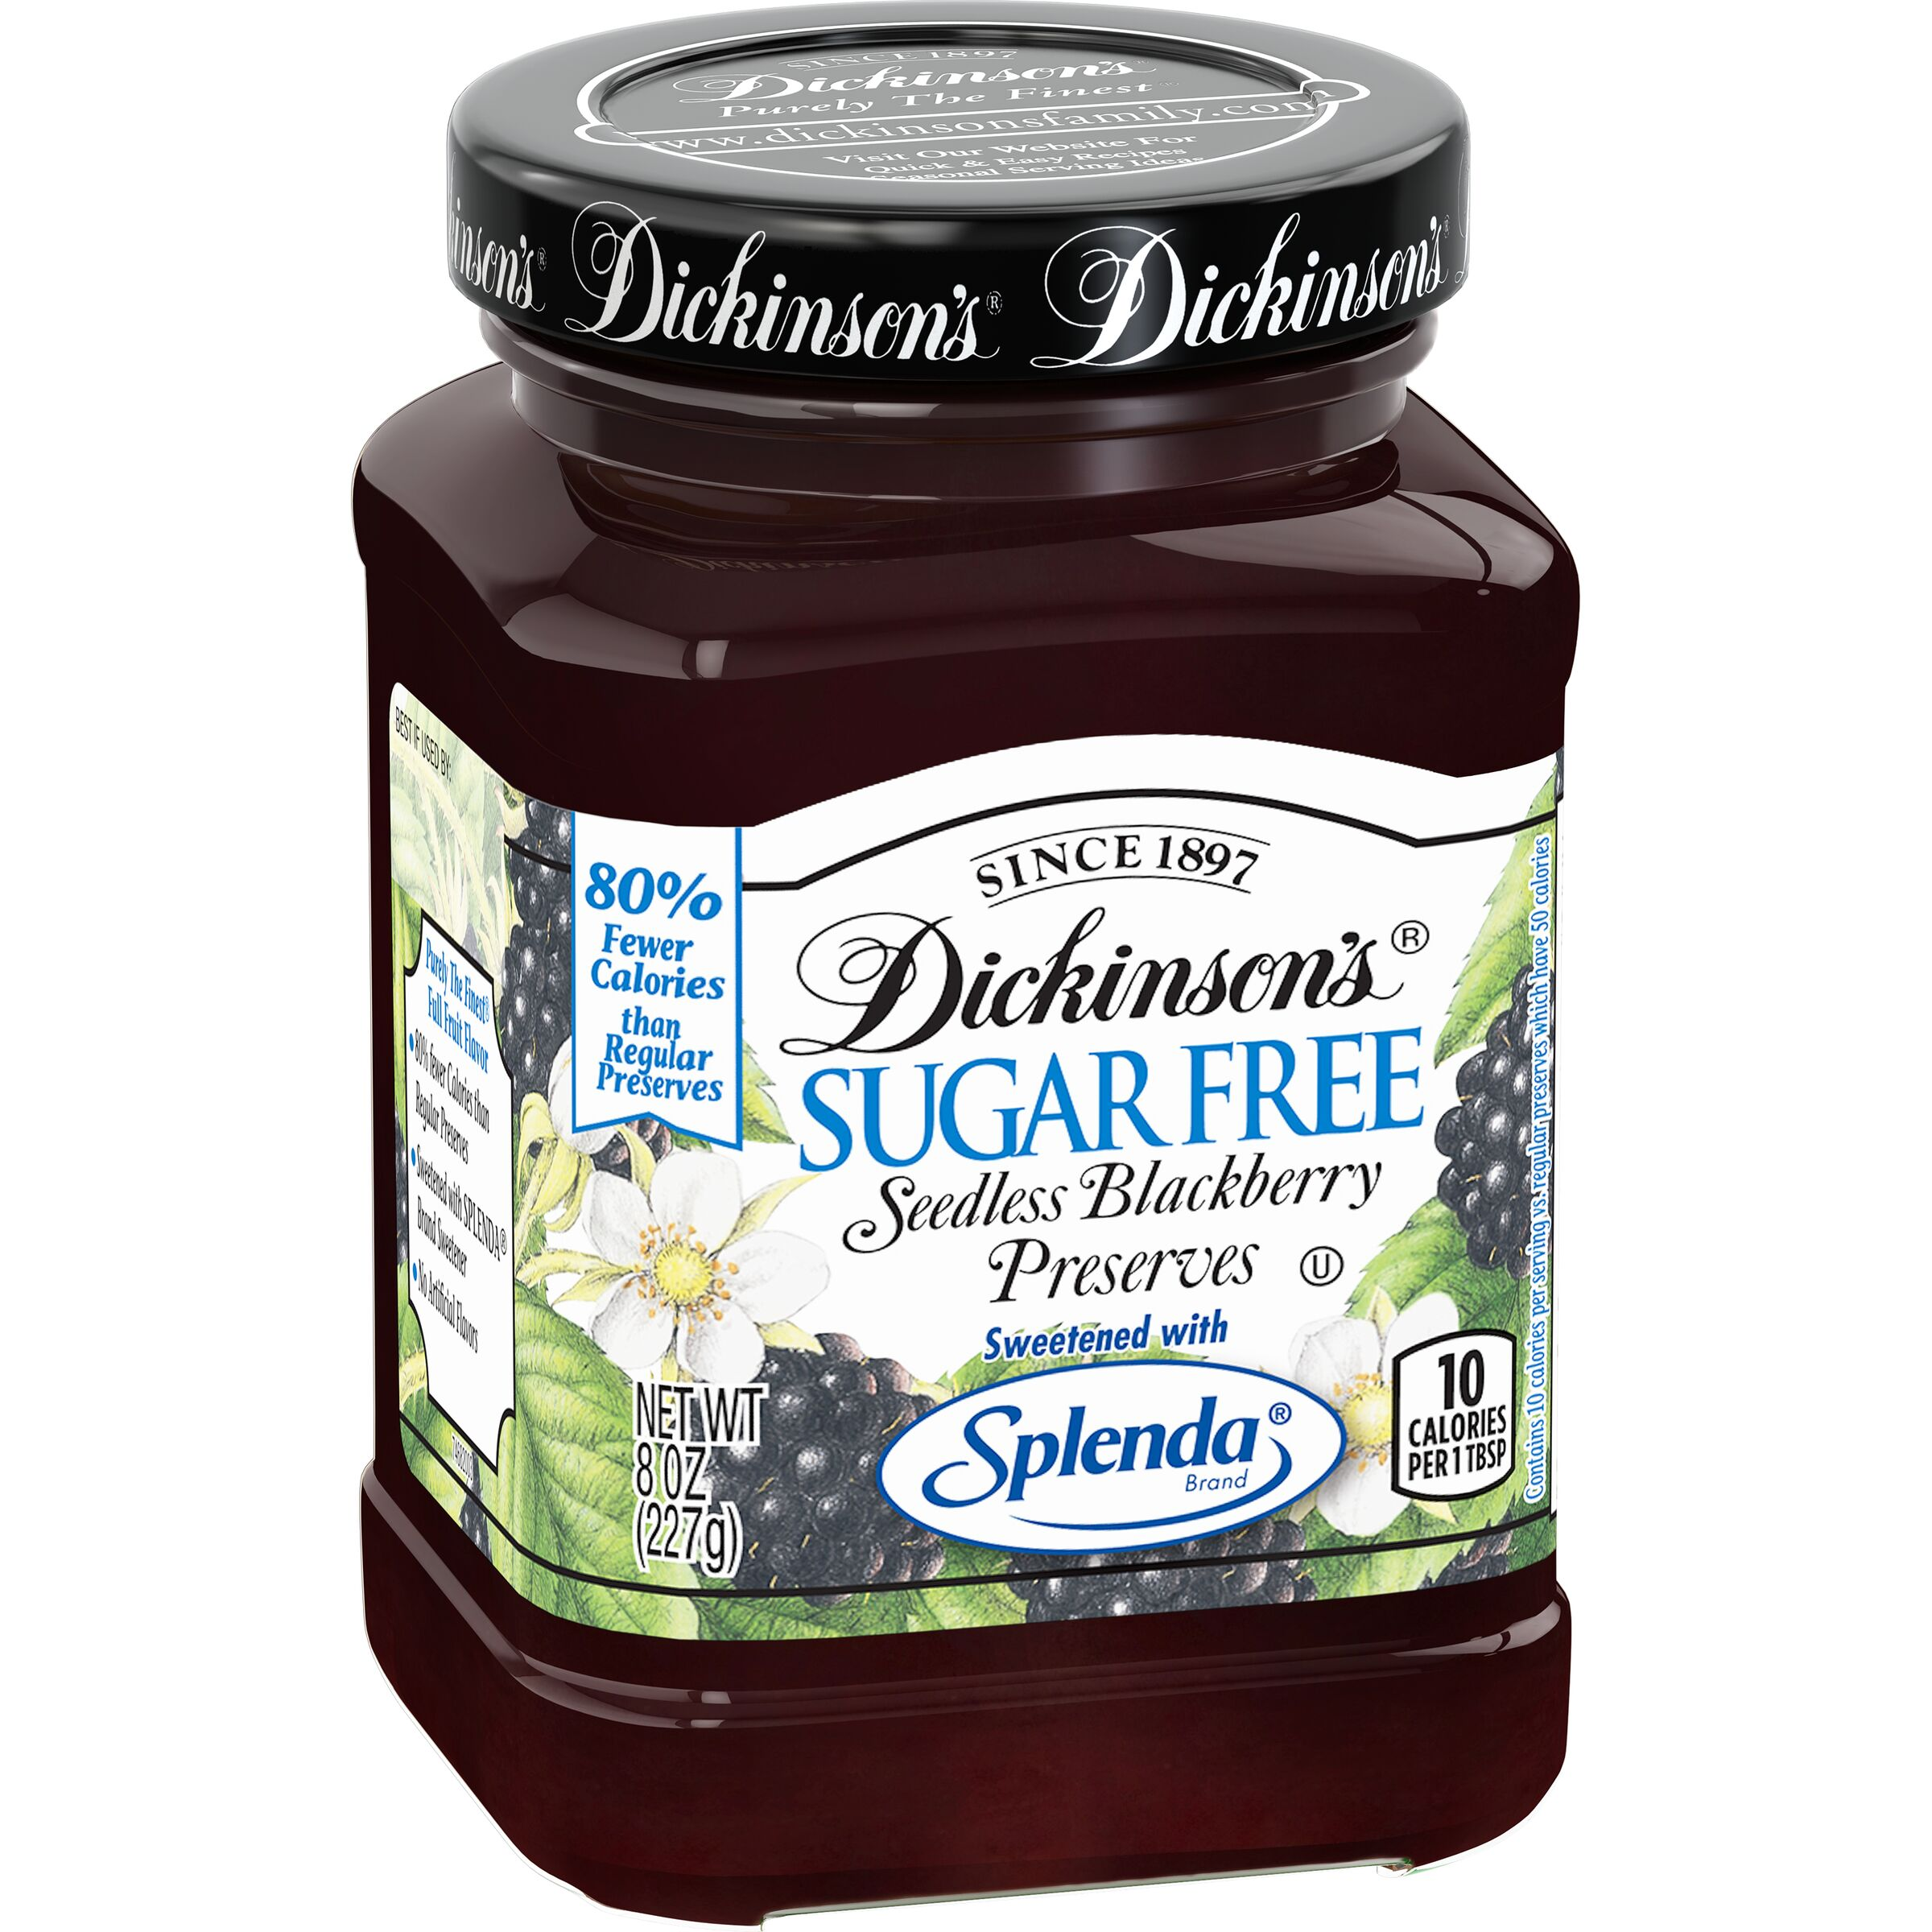 Dickinson's<sup>®</sup>  Sugar Free Seedless Blackberry Preserves